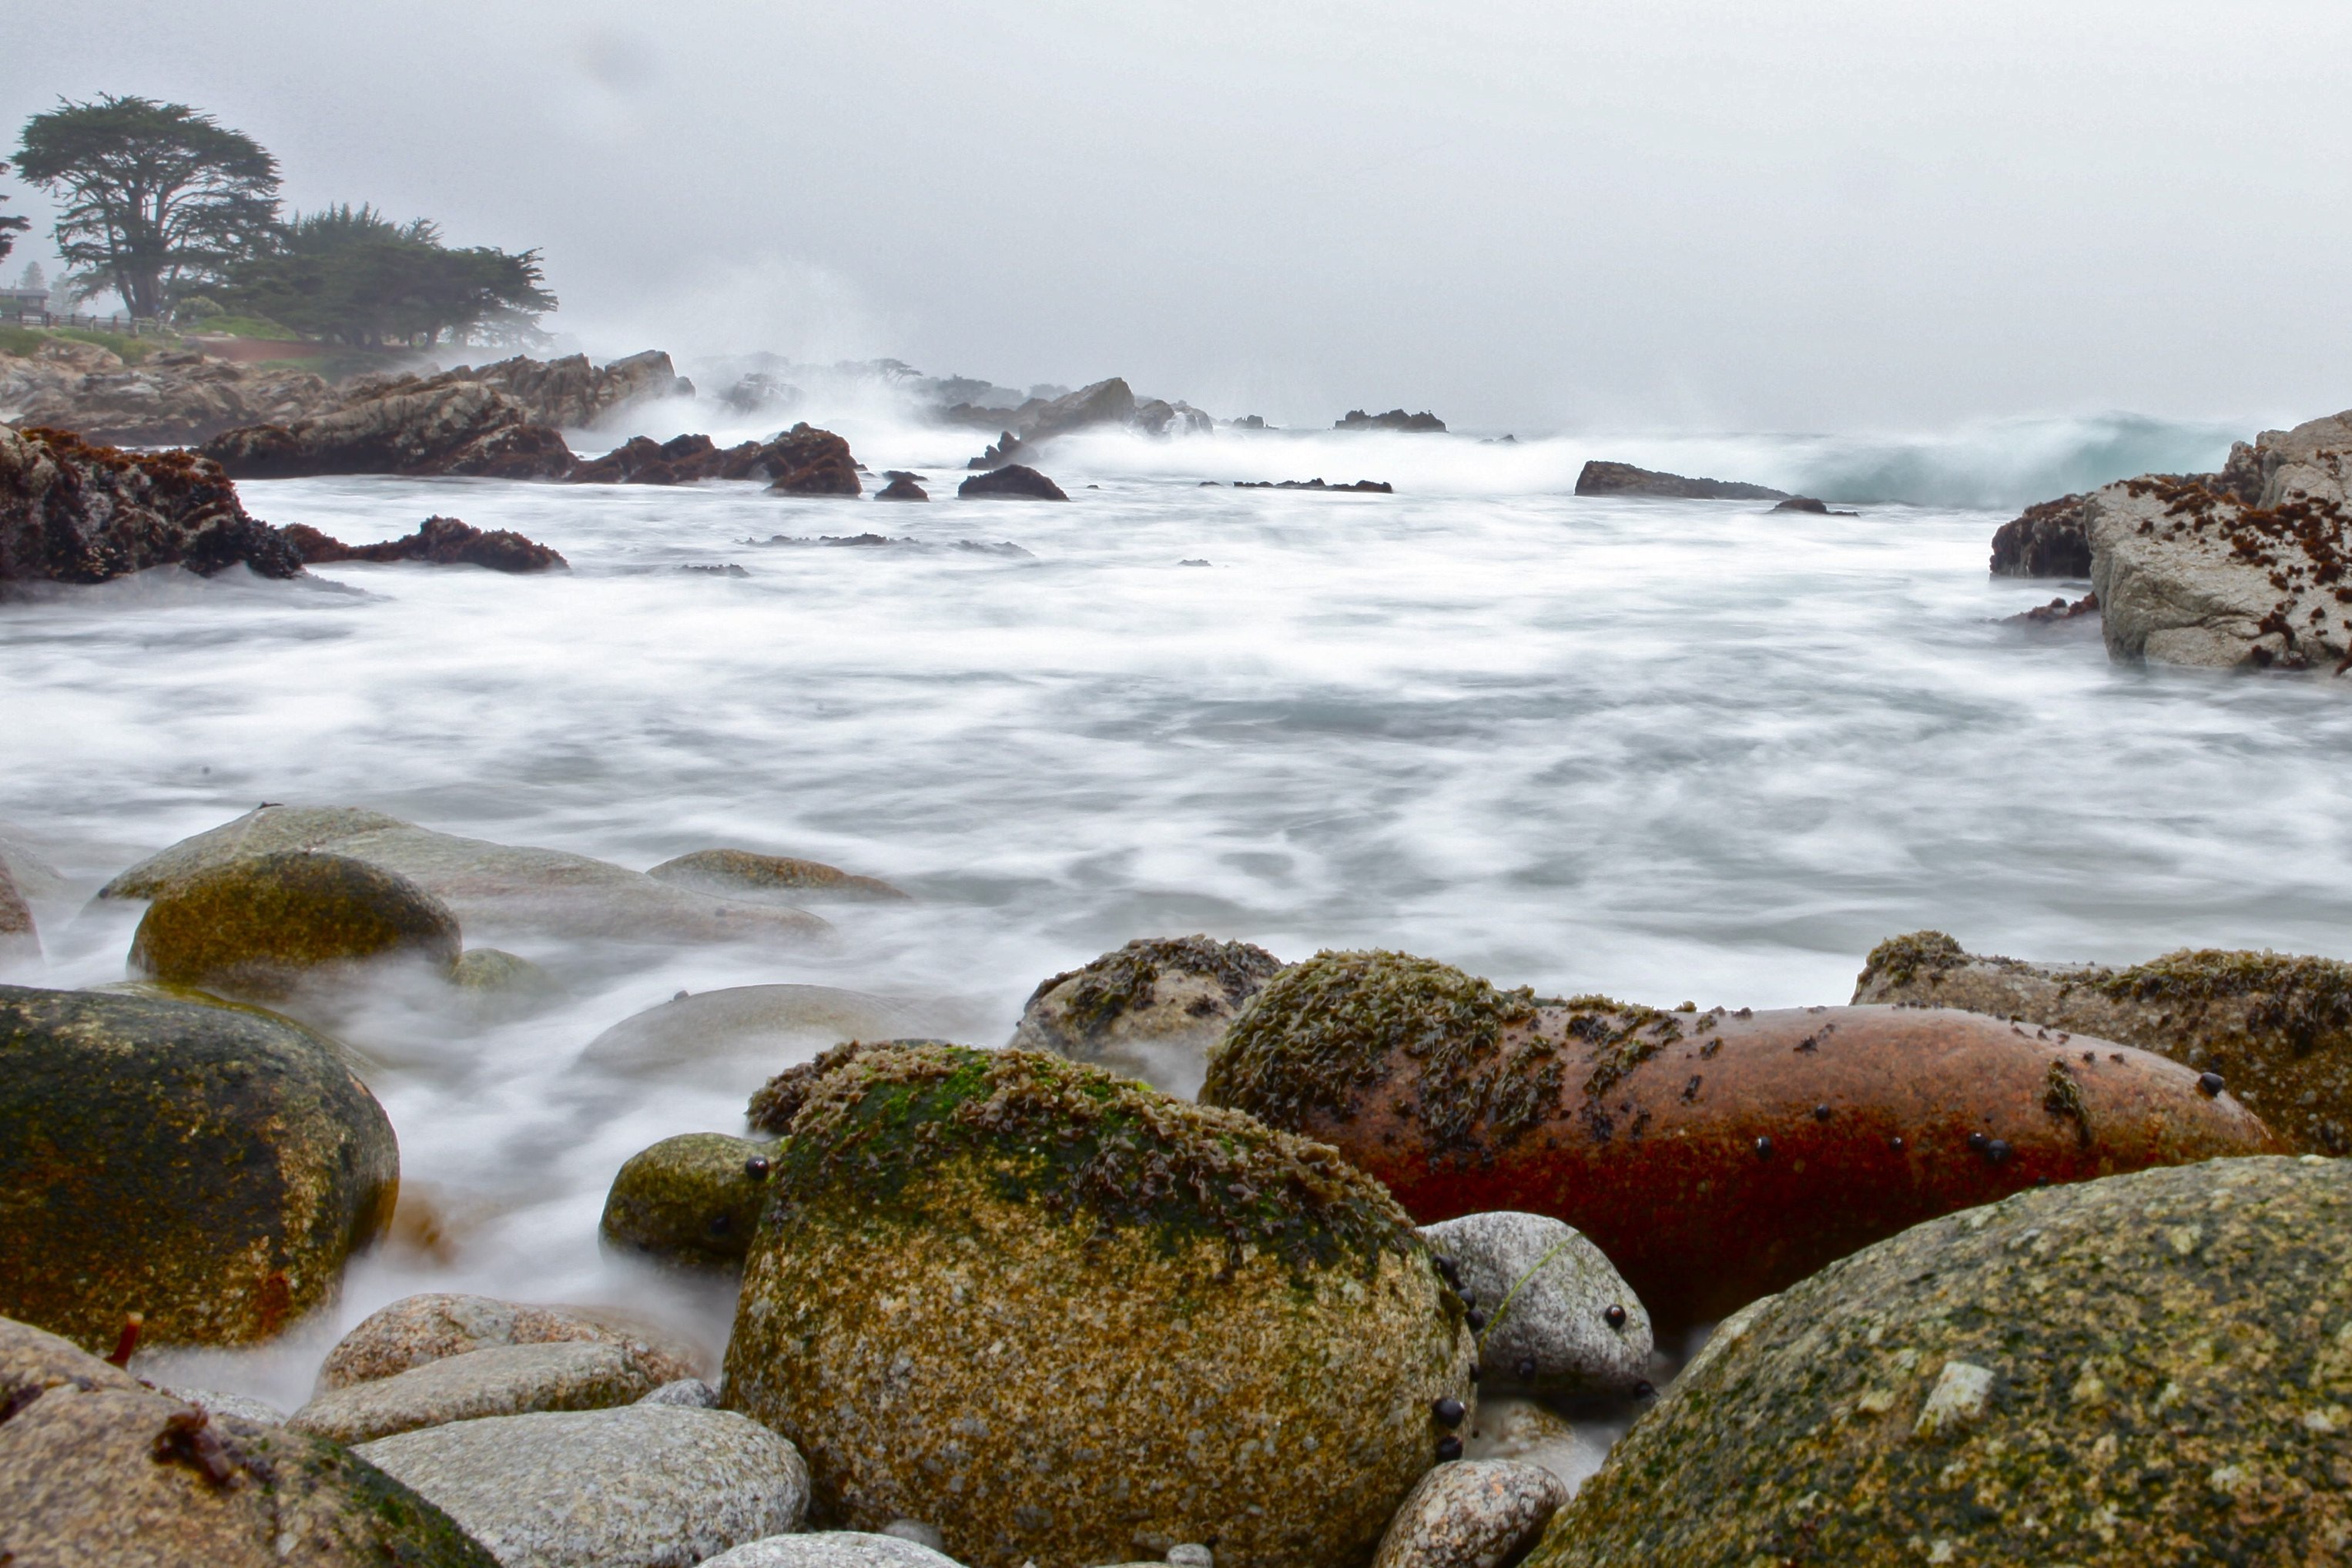 Pacific Grove during a rain storm